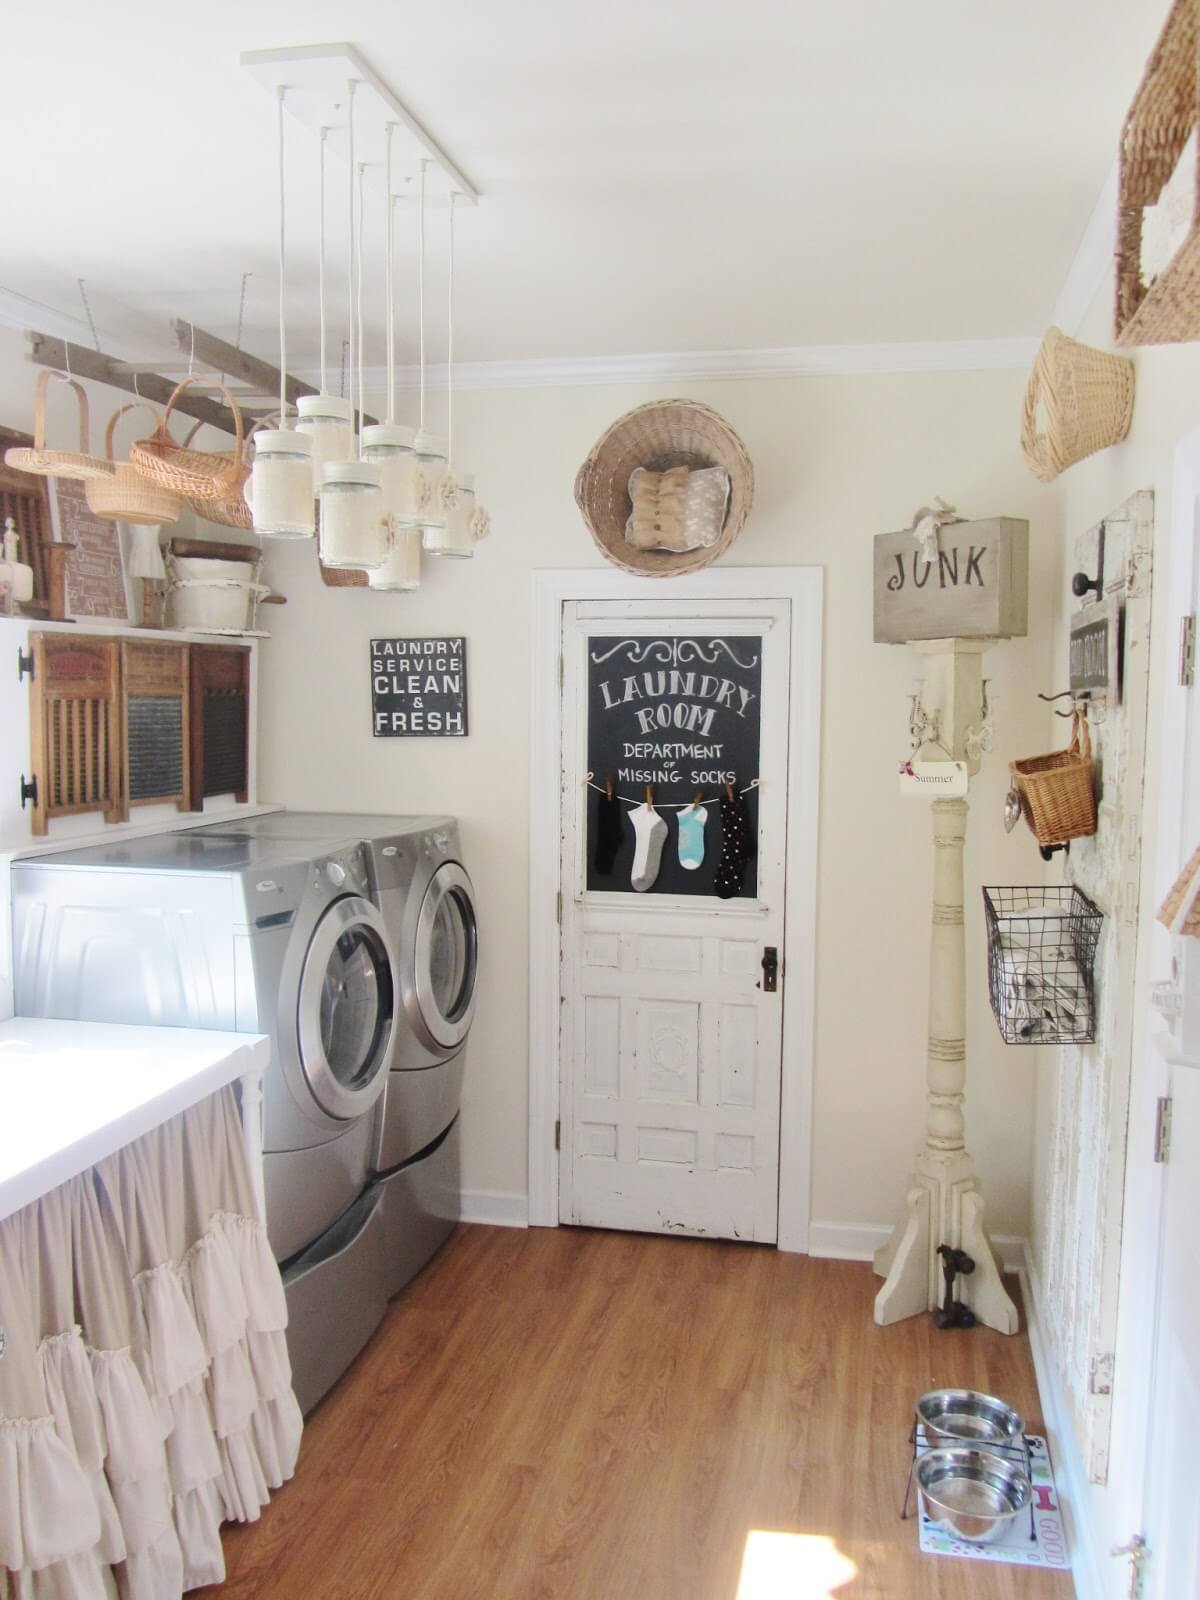 25 Best Vintage Laundry Room Decor Ideas and Designs for 2017 on Laundry Room Decor Ideas  id=77155